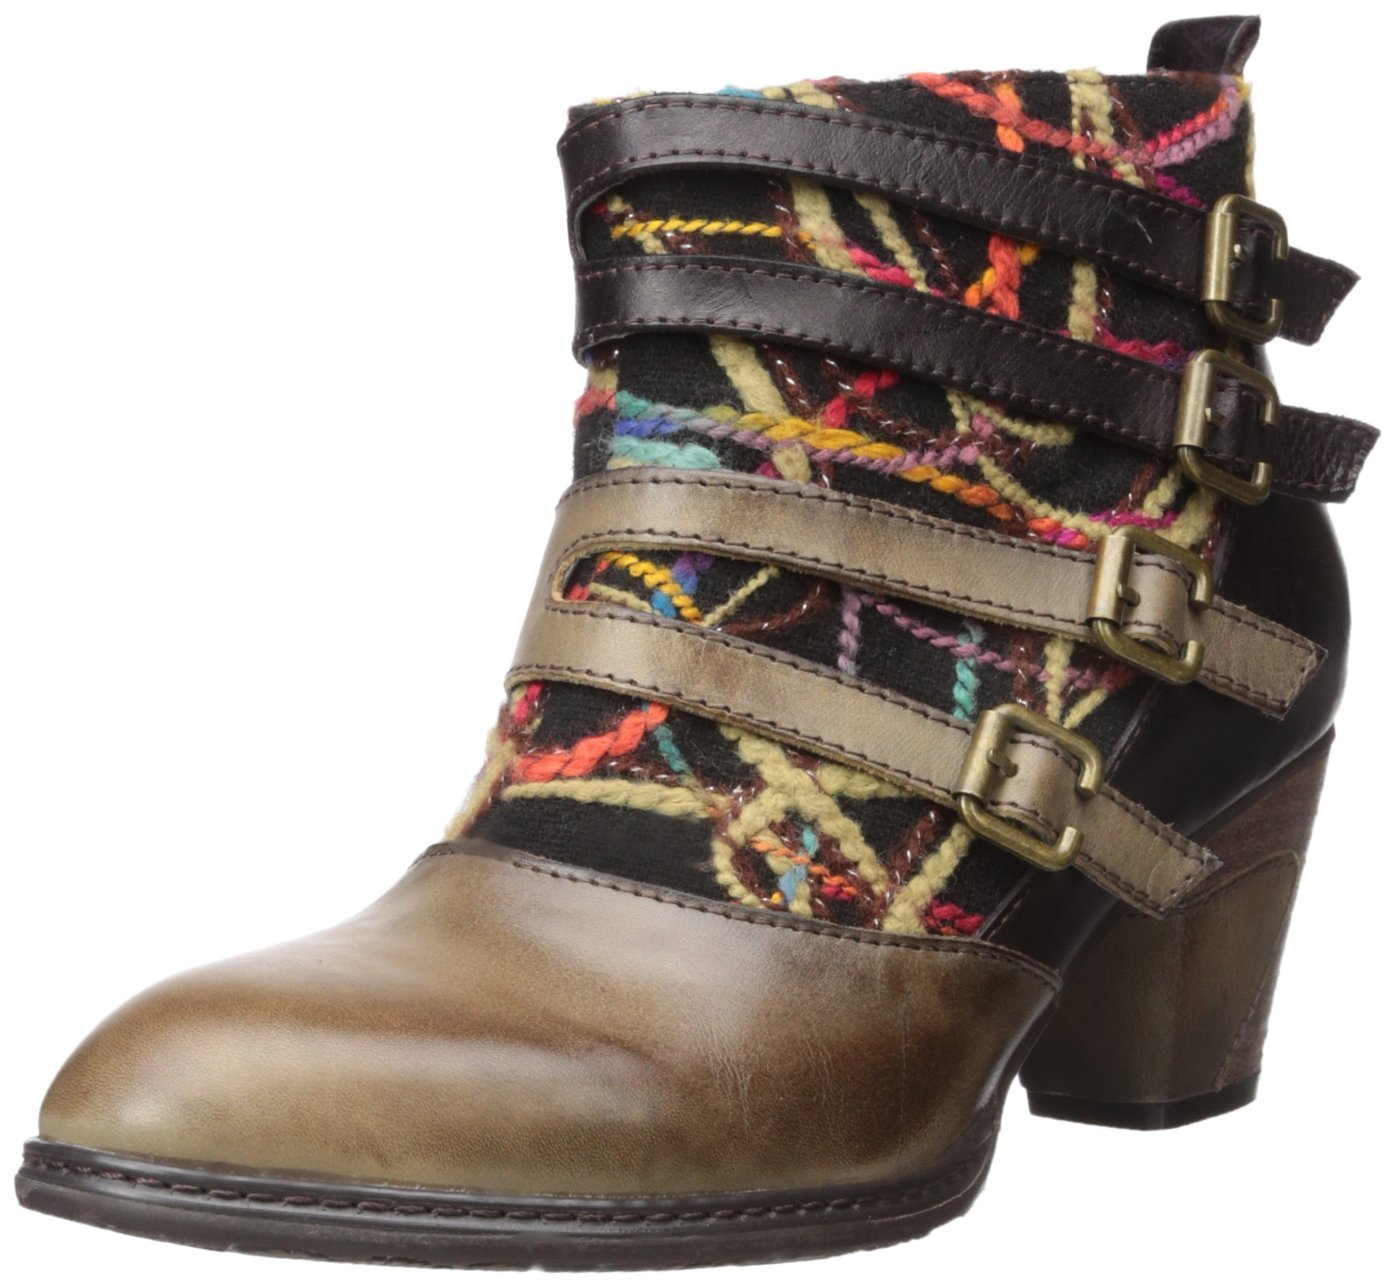 L'Artiste by Spring Step Women's Redding Boot B00JKT8WF2 38 EU/7.5-8 M US|Taupe Multi